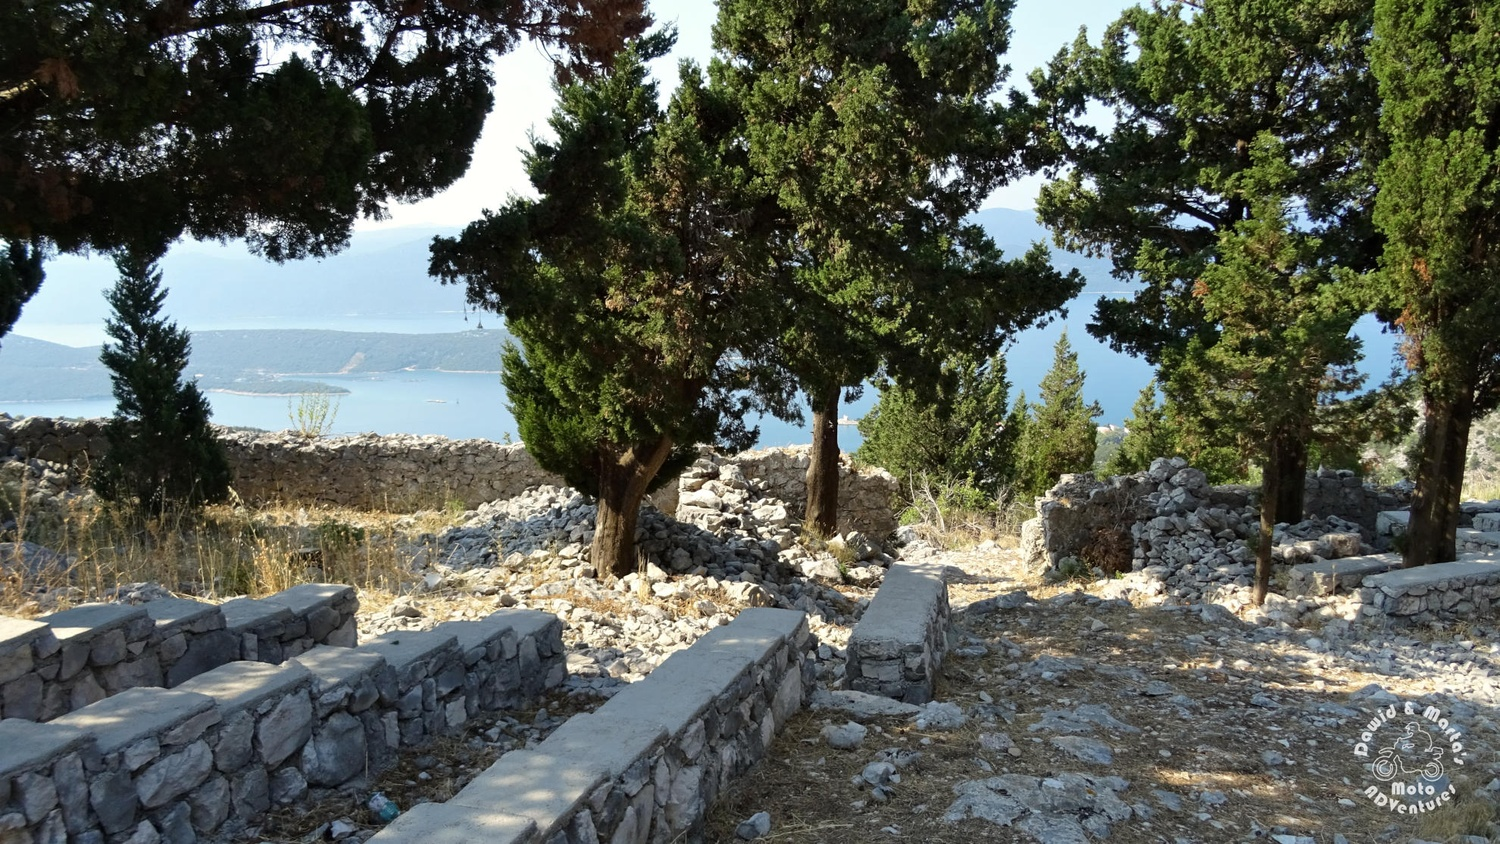 The Smrdan Grad lookout point on the Adriatic Sea